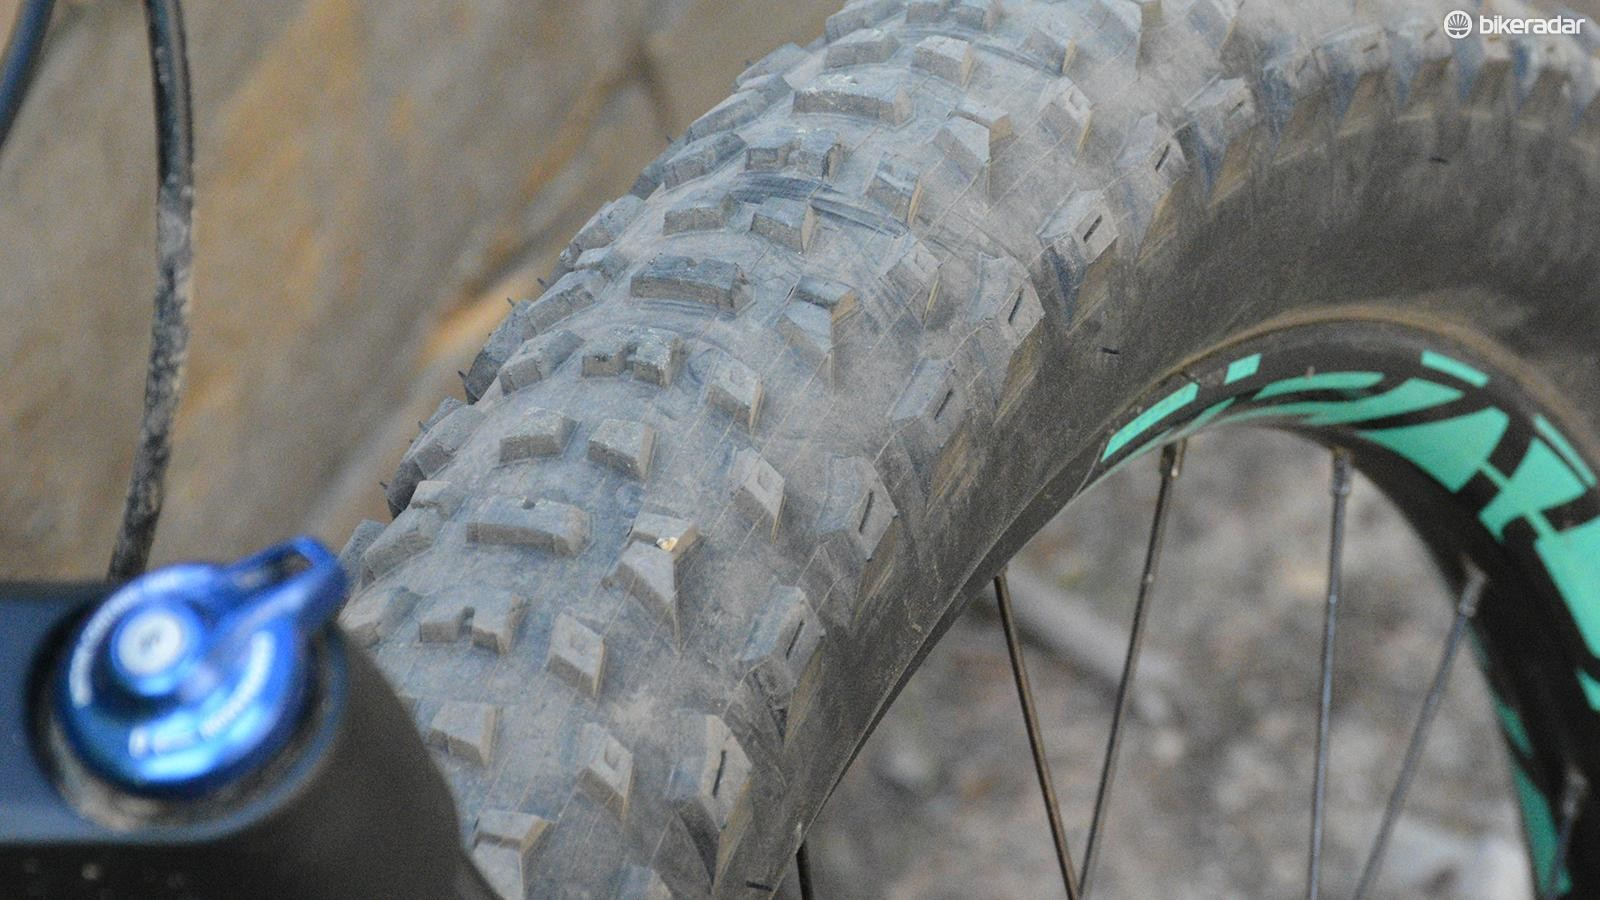 Up front a 27..5 x 3.0 Specialized Purgatory leads the way. Even with the 38mm wide Roval rim, it's a rounded casing